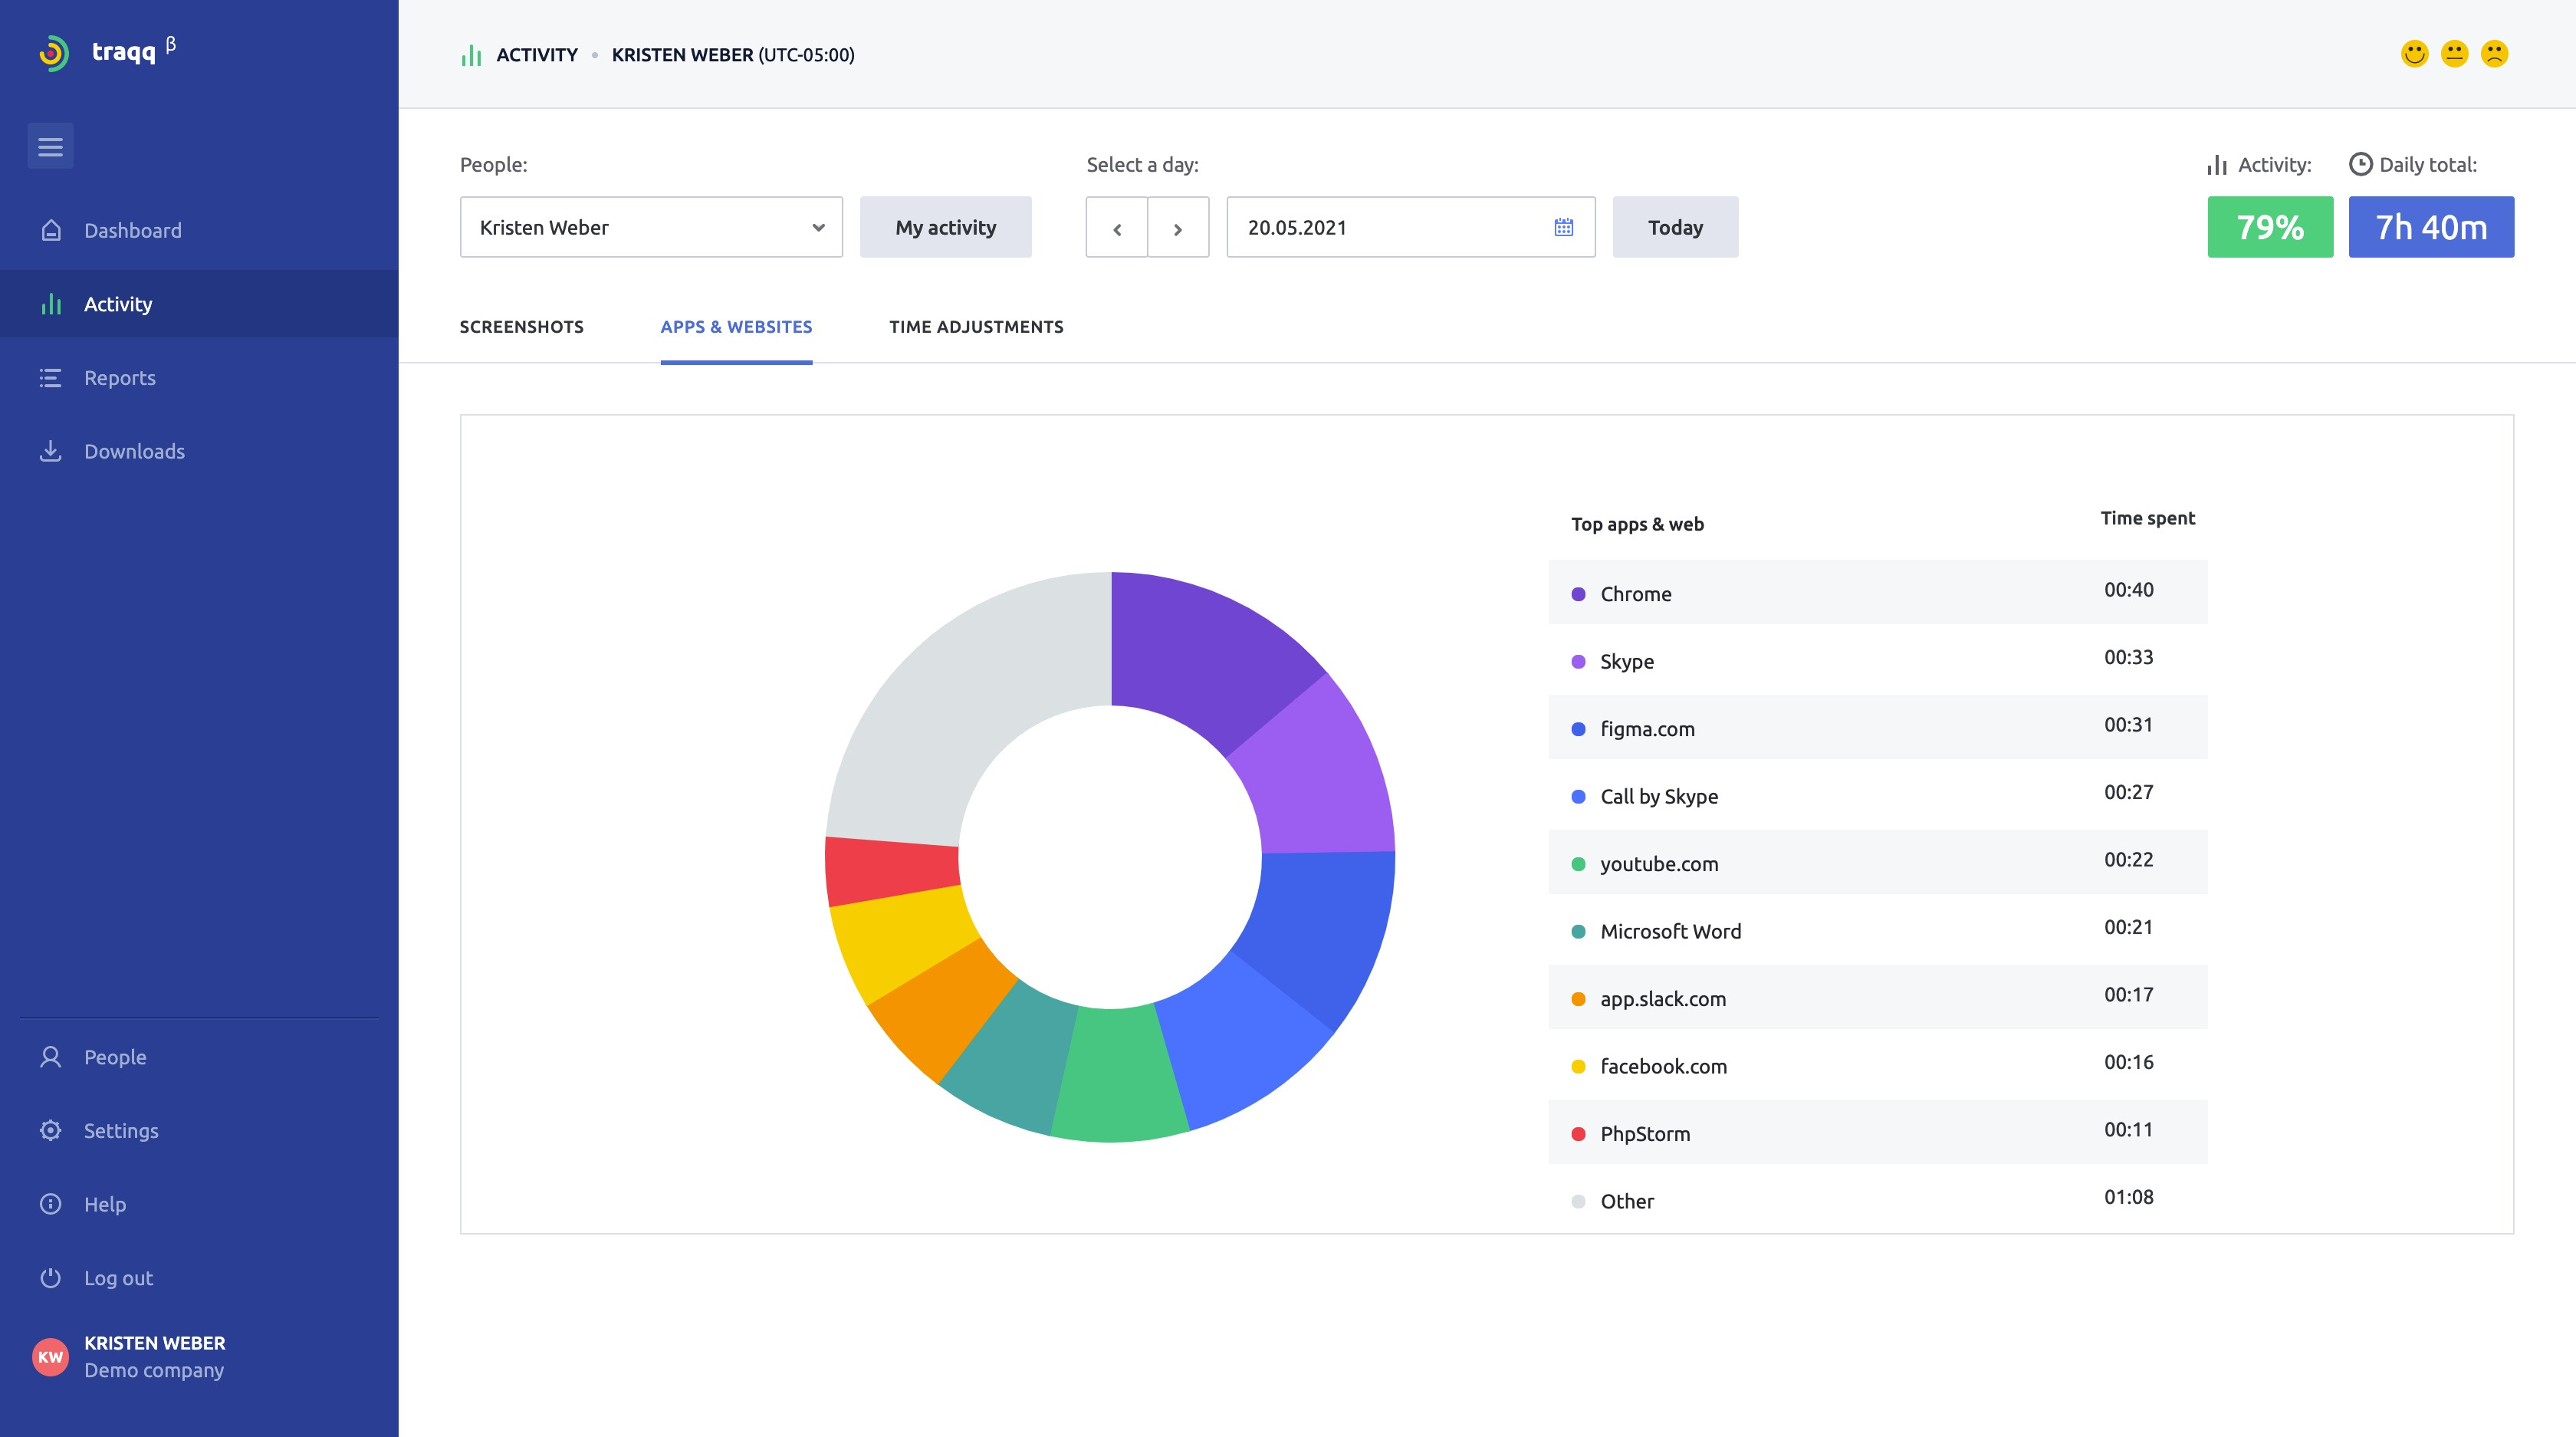 Apps & Websites: Browse your team's piechart of most used apps & websites during their active work hours